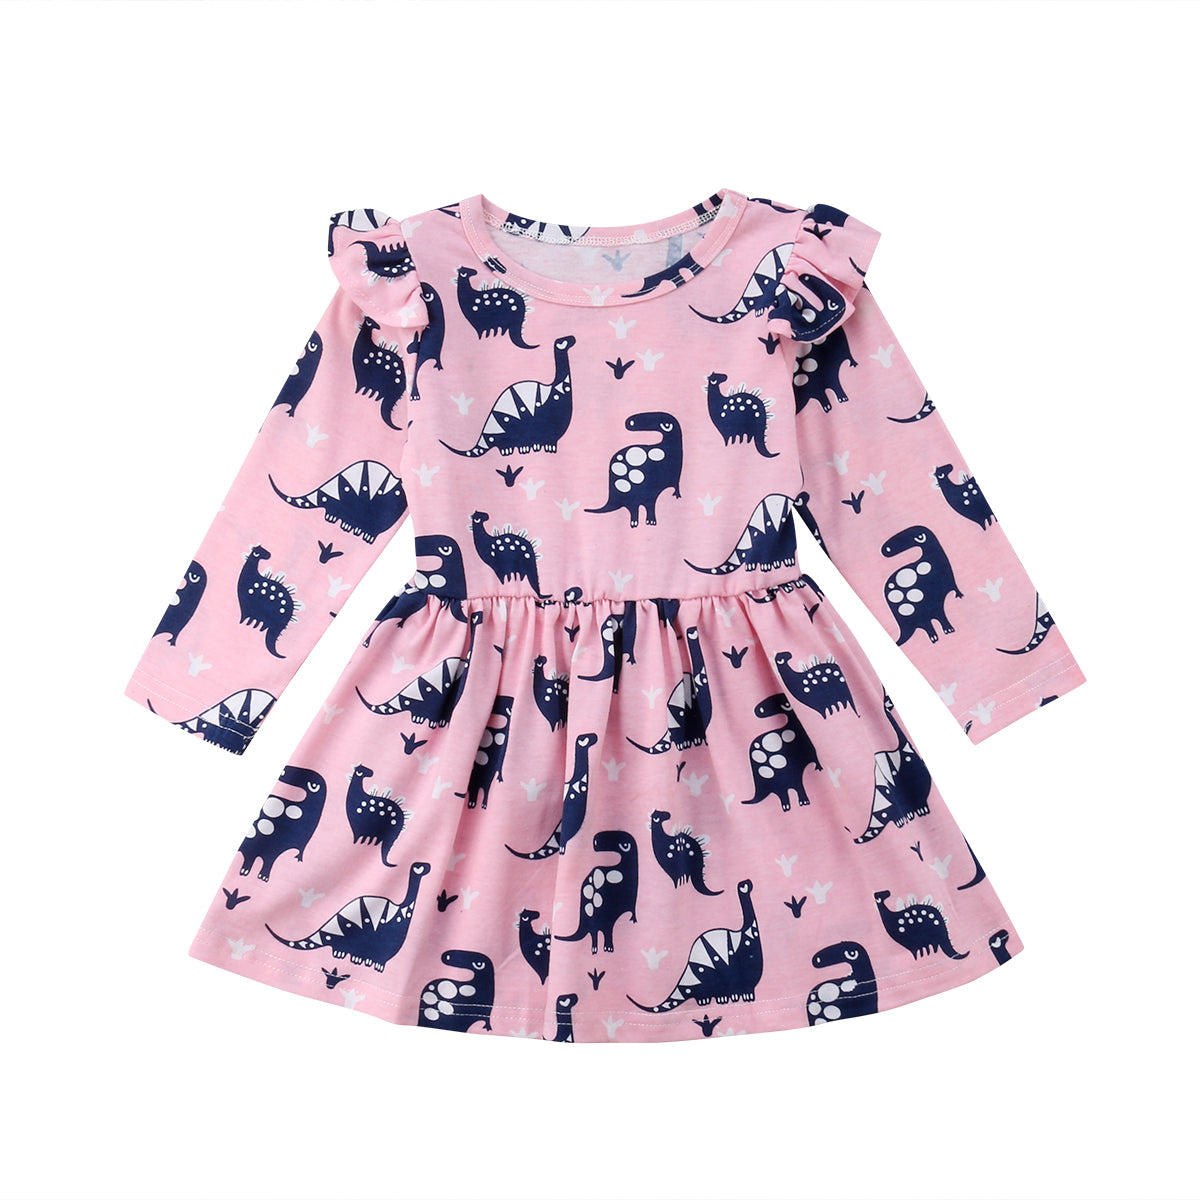 Toddler Kid Baby Girl Scale Dinosaur Princess Dress Pageant Party Costume Outfit